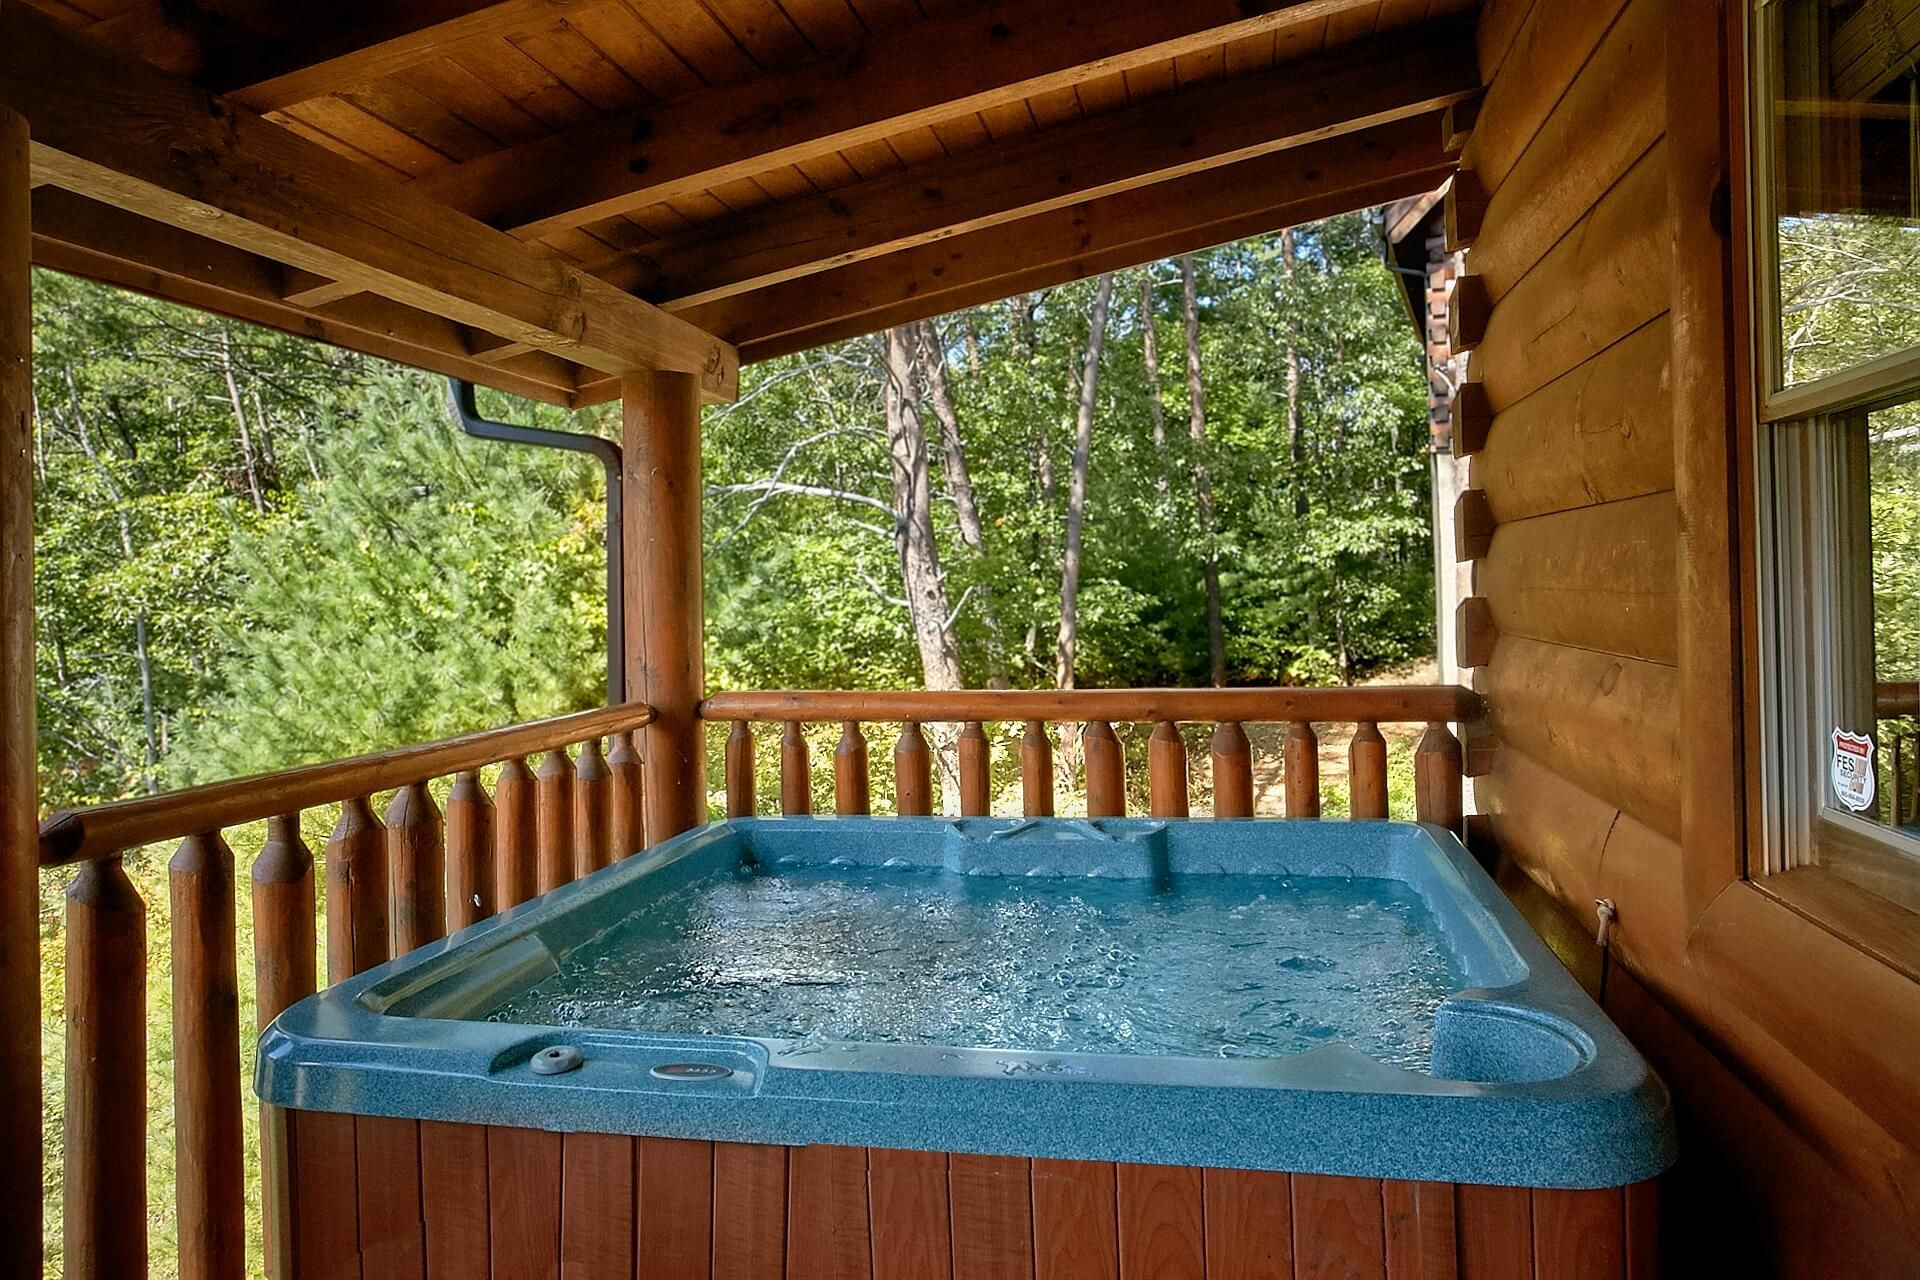 You Are Just Steps To A Year Round Indoor Pool From You Luxury 2 Bedroom Cabin In Pigeon Forge Gatlinburg Cabin Rentals Hot Tub Outdoor Indoor Pool Design